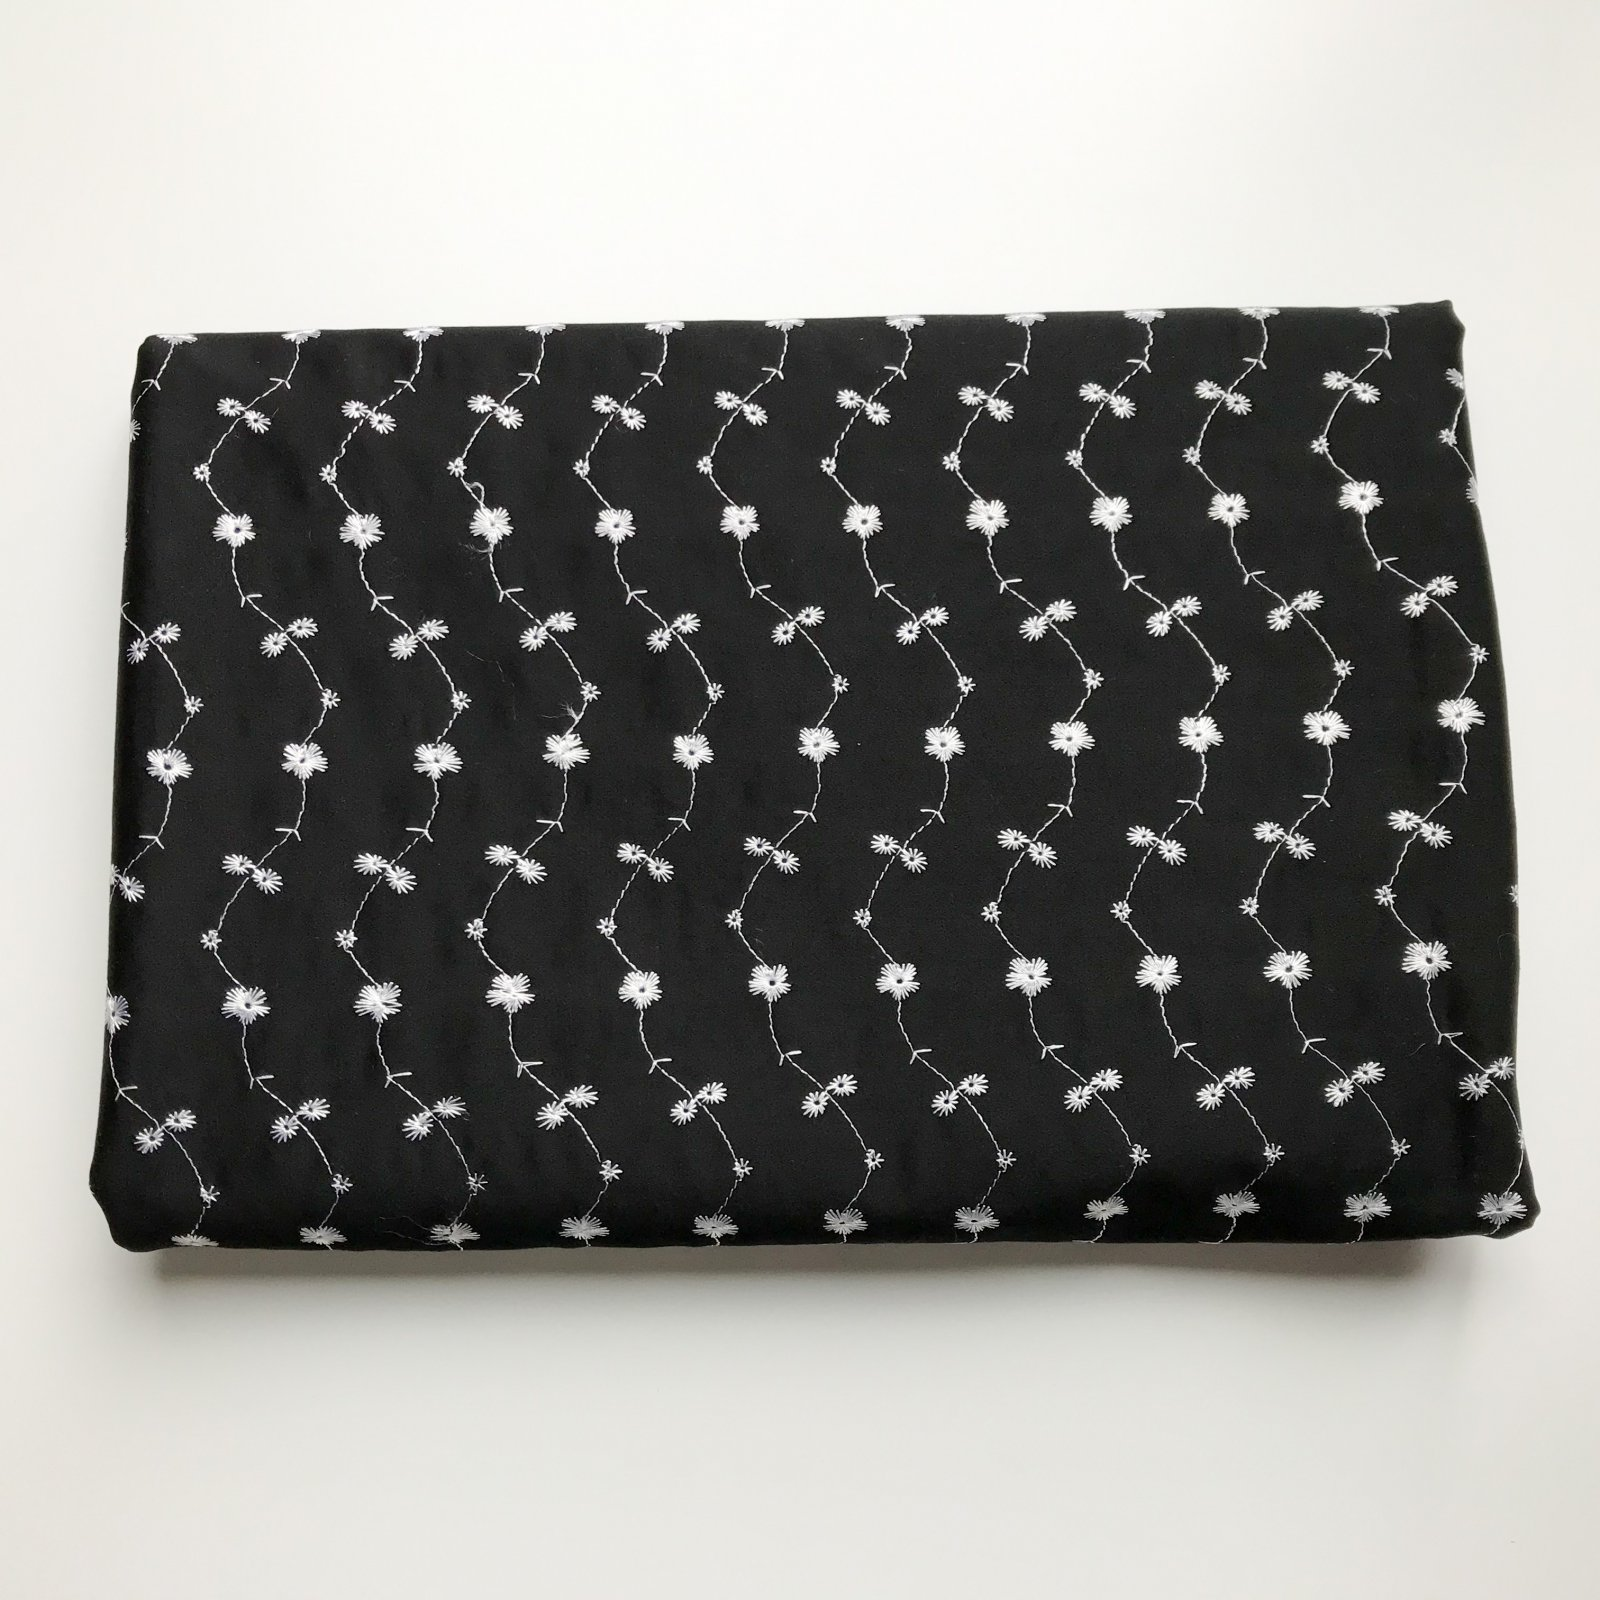 3 yards - Black Shirting with White Embroidery